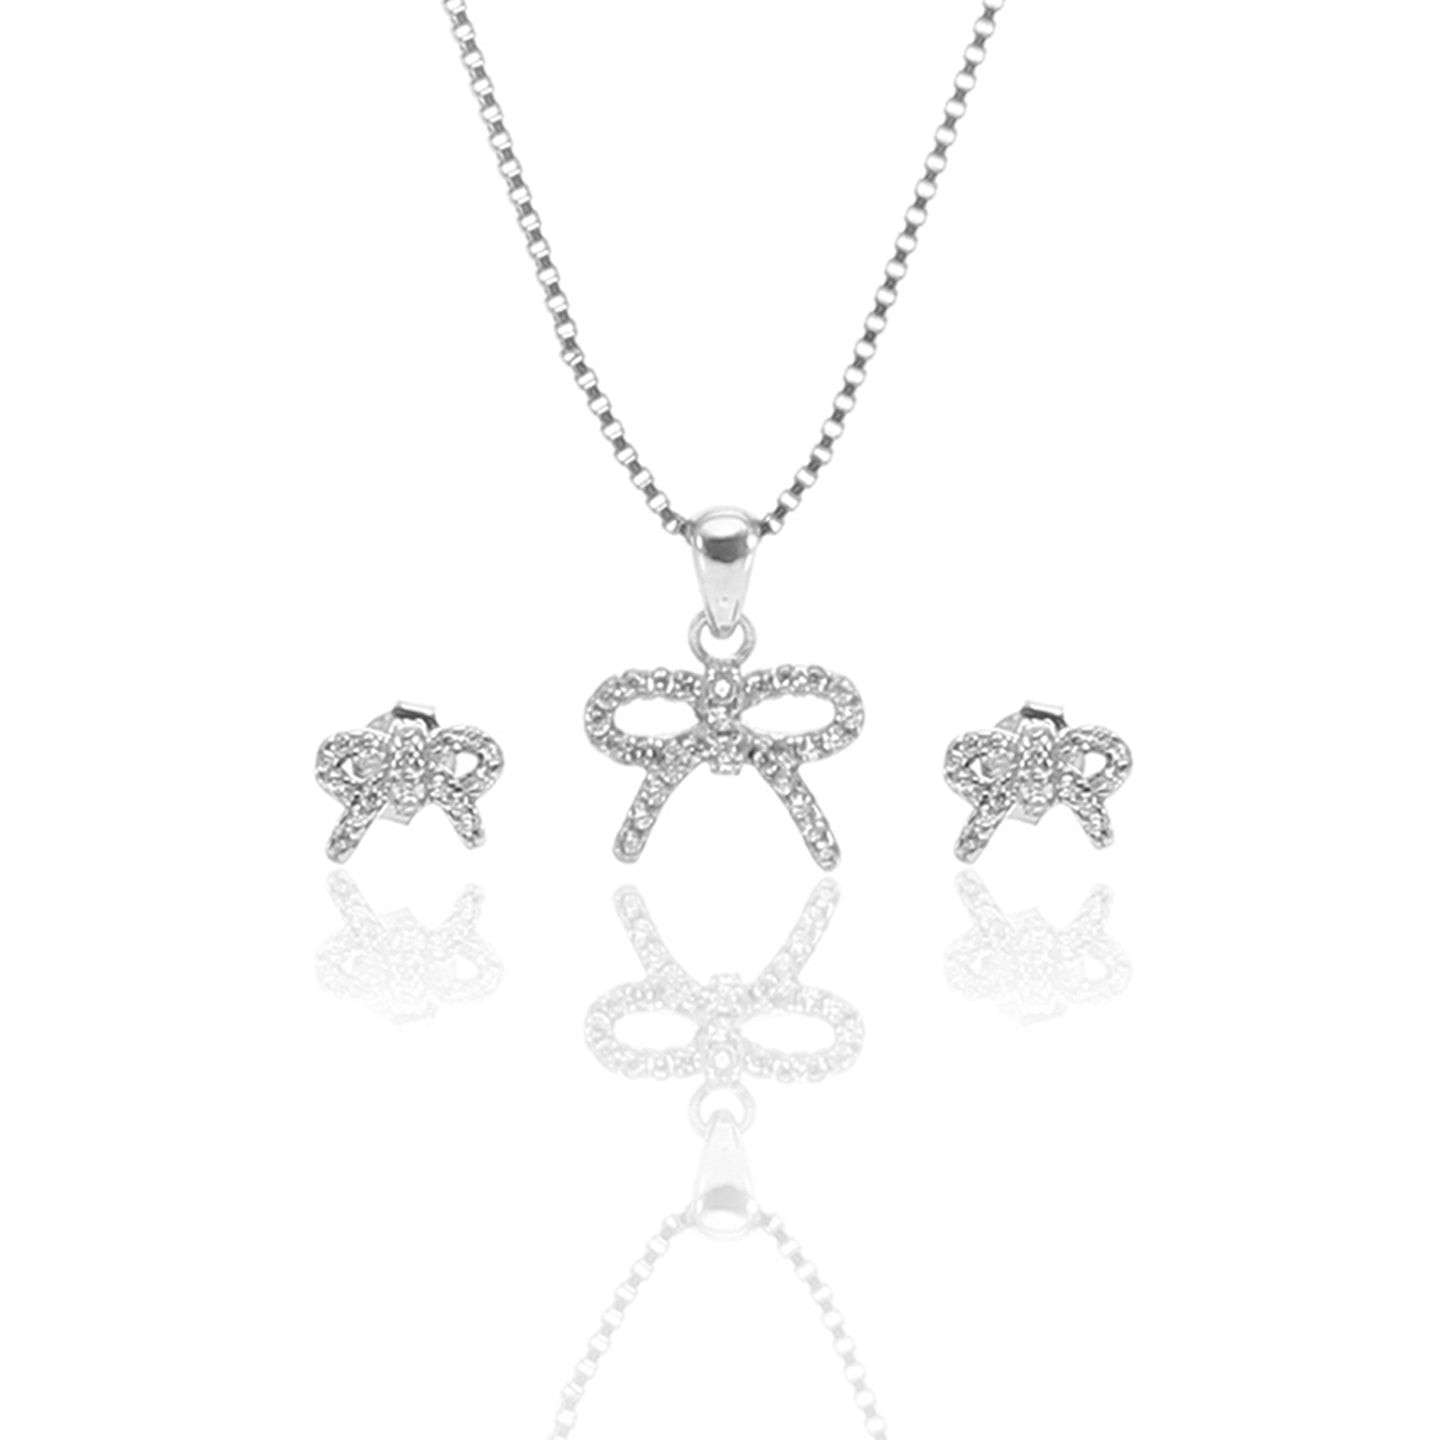 Sparkling Bow Pendant Necklace and Earrings Set - ARJW1010RD - ARCADIO LIFESTYLE